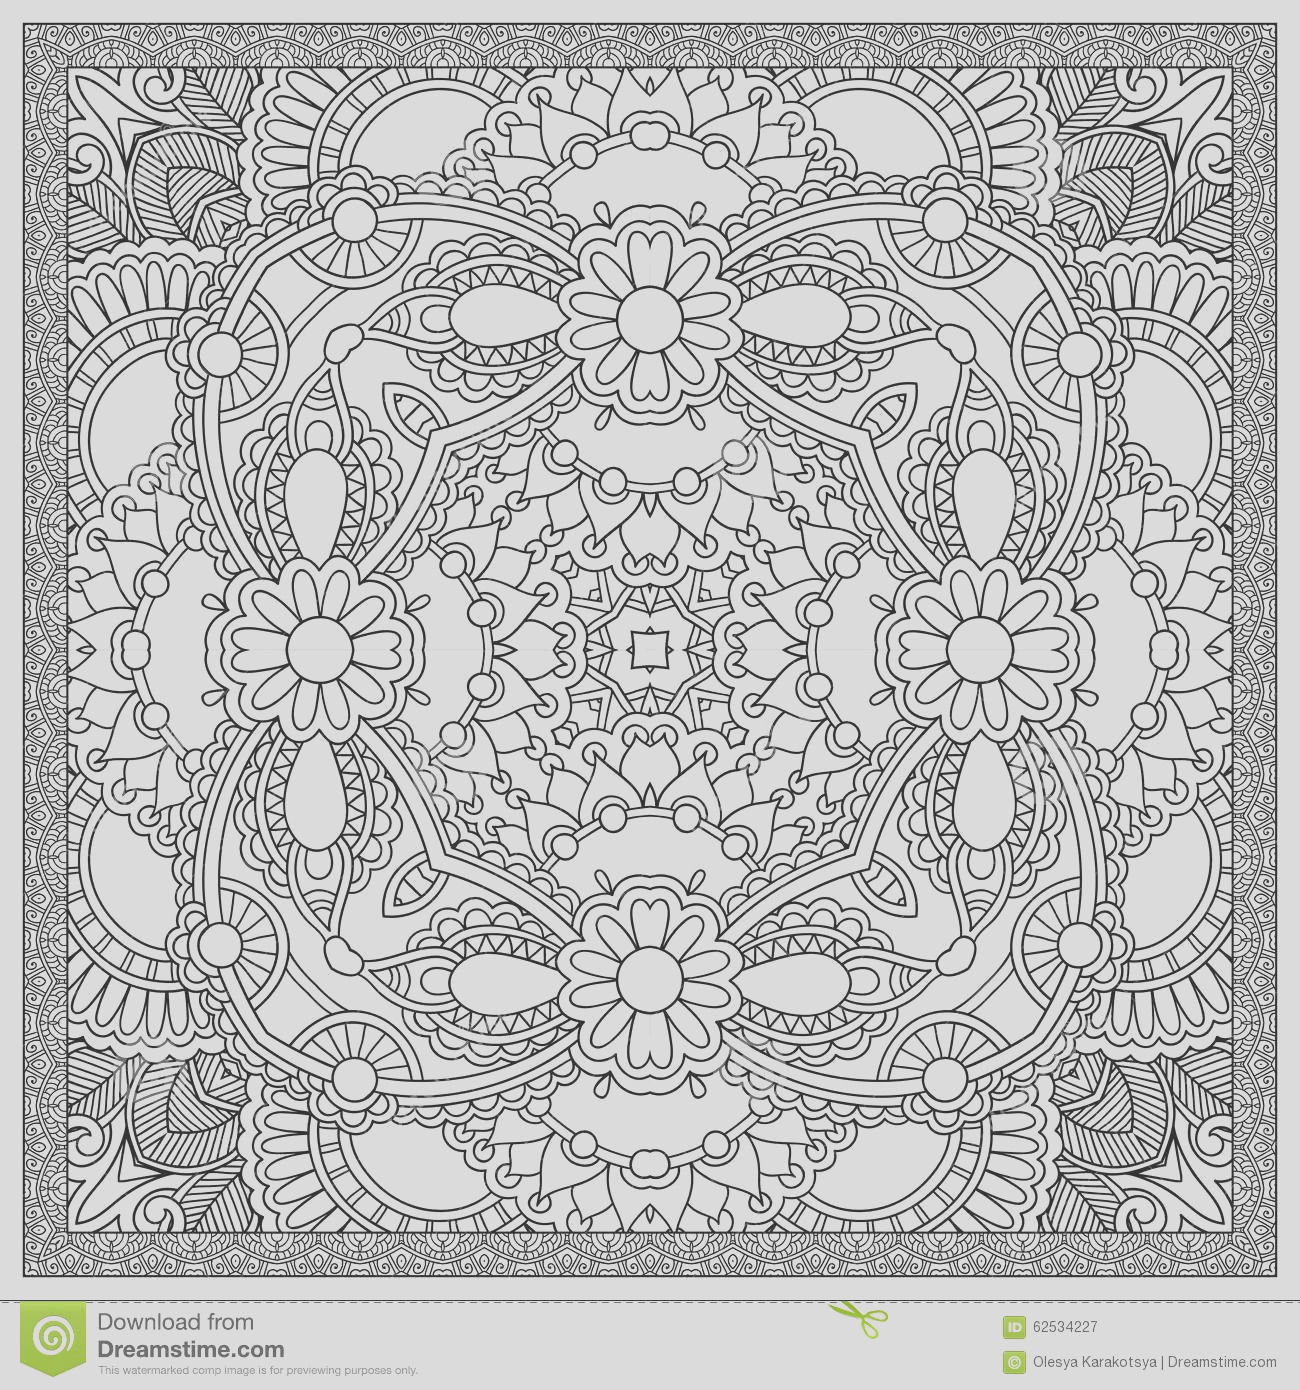 stock illustration unique coloring book square page adults floral authentic carpet design joy to older children adult colorists who like line image